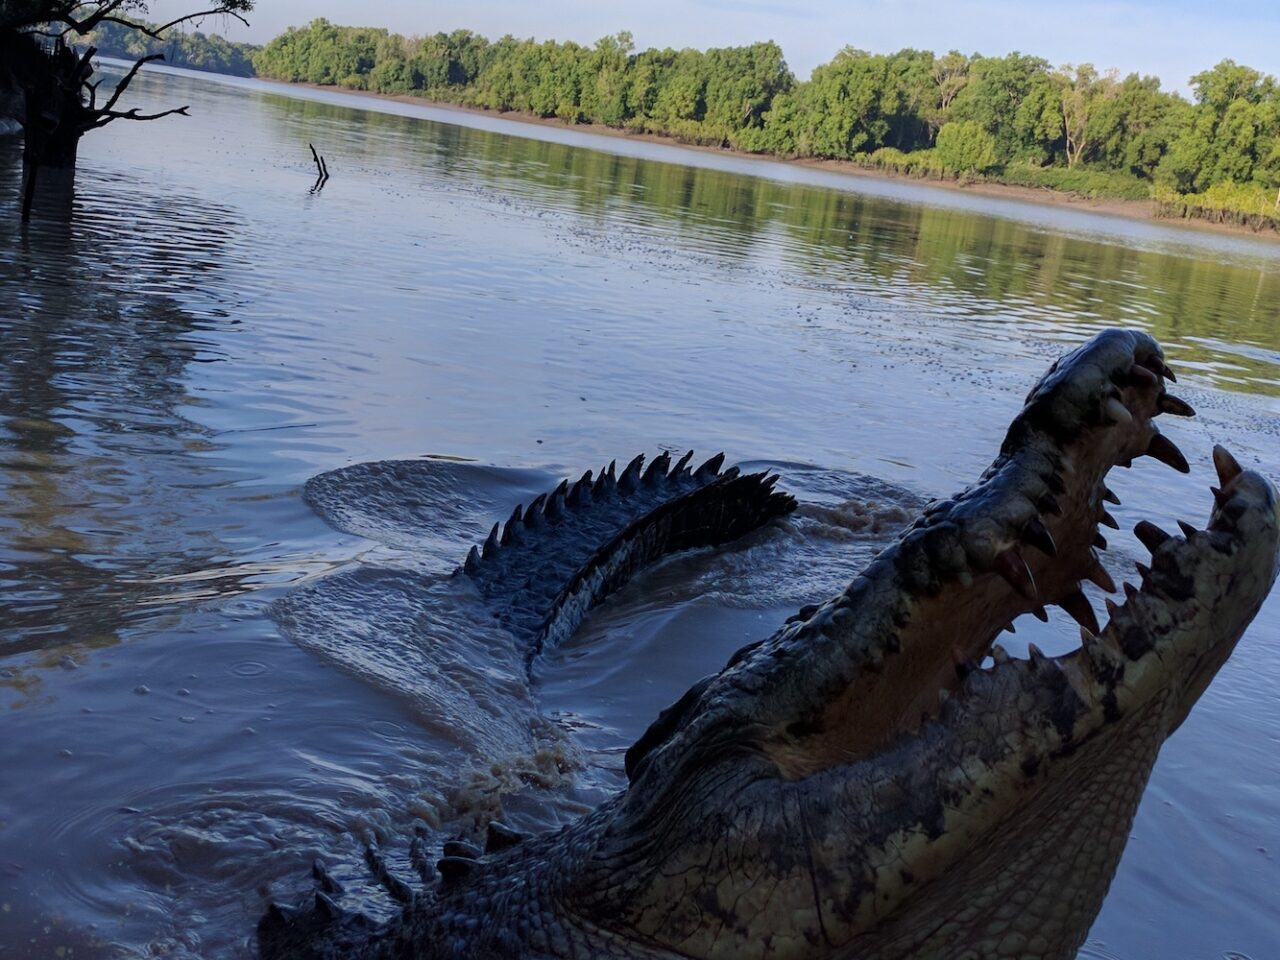 Croc or River Serpent